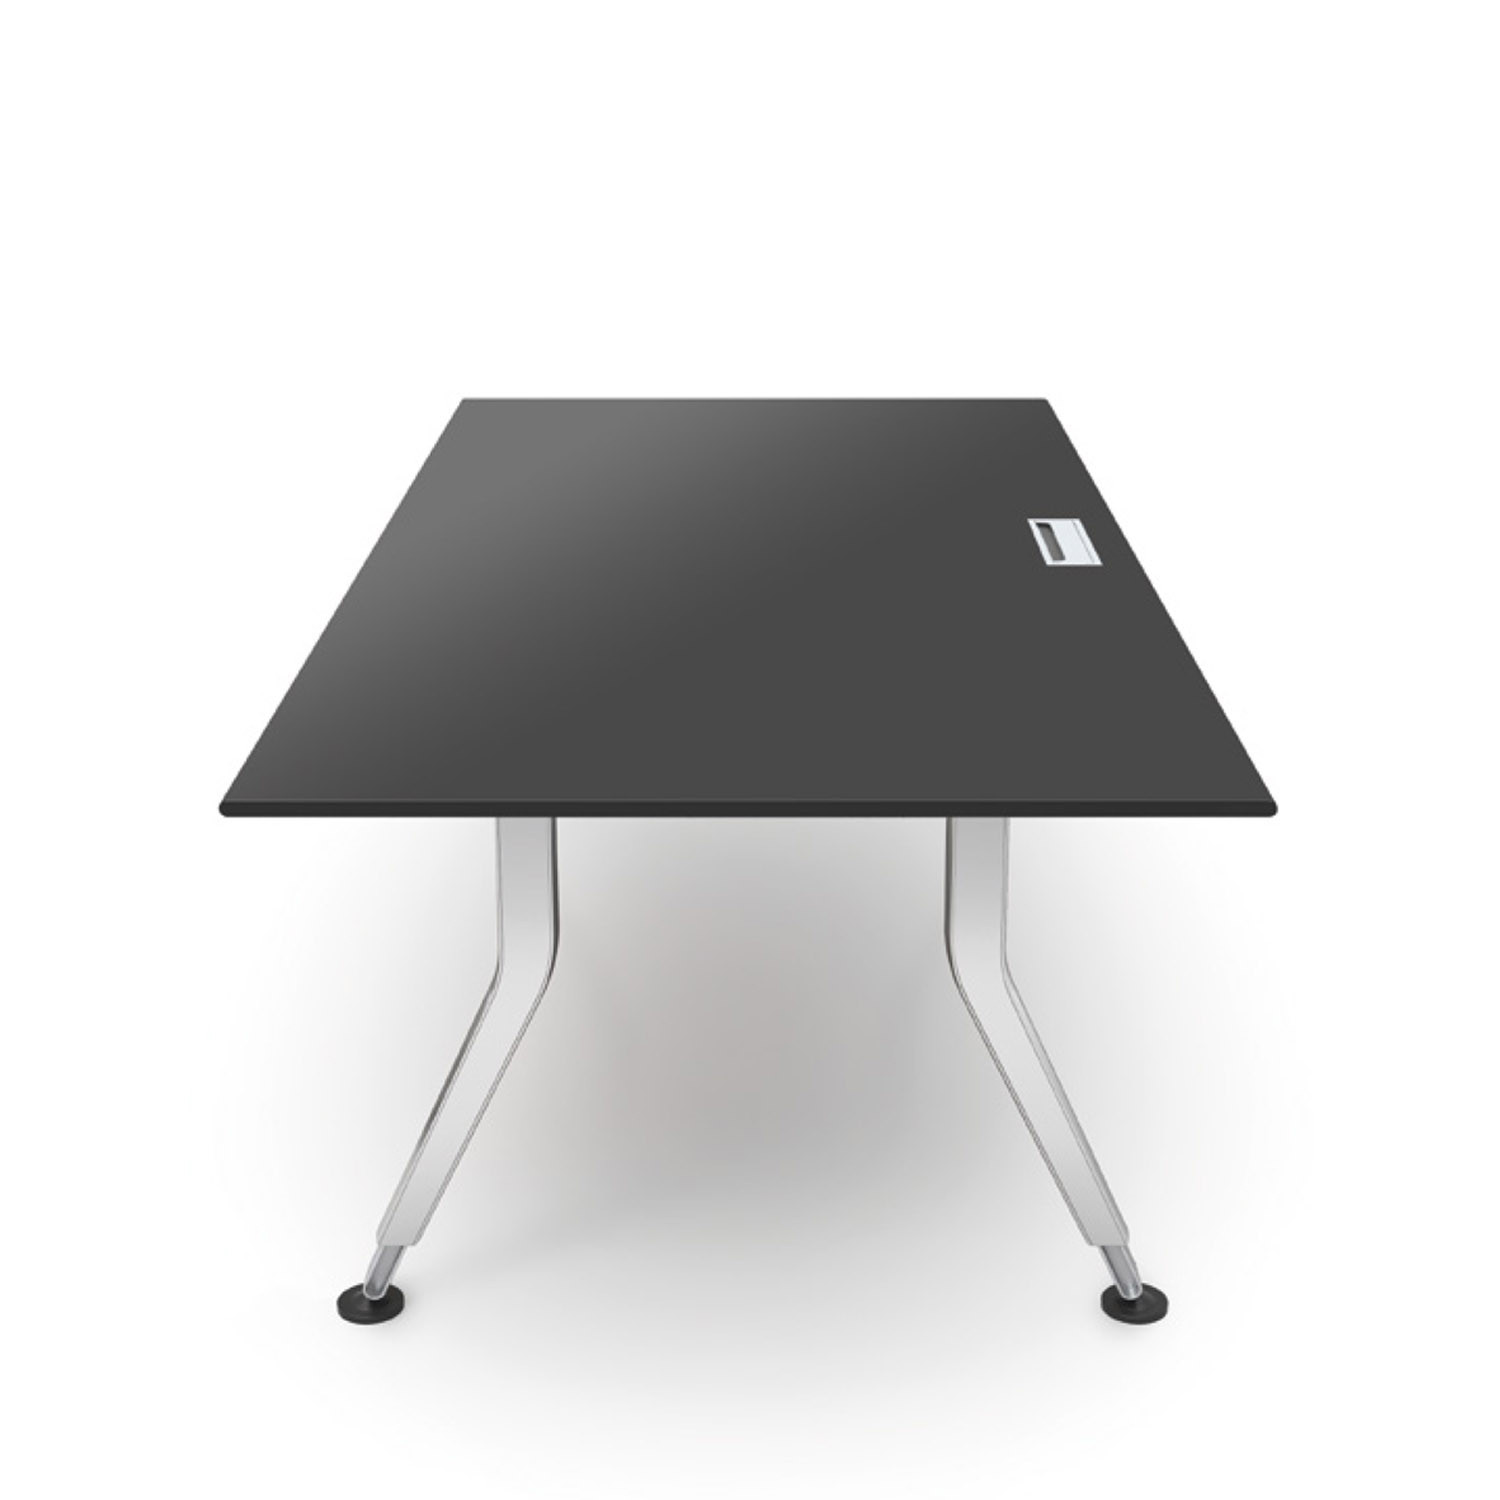 Synapso Desk from Martin Ballendat